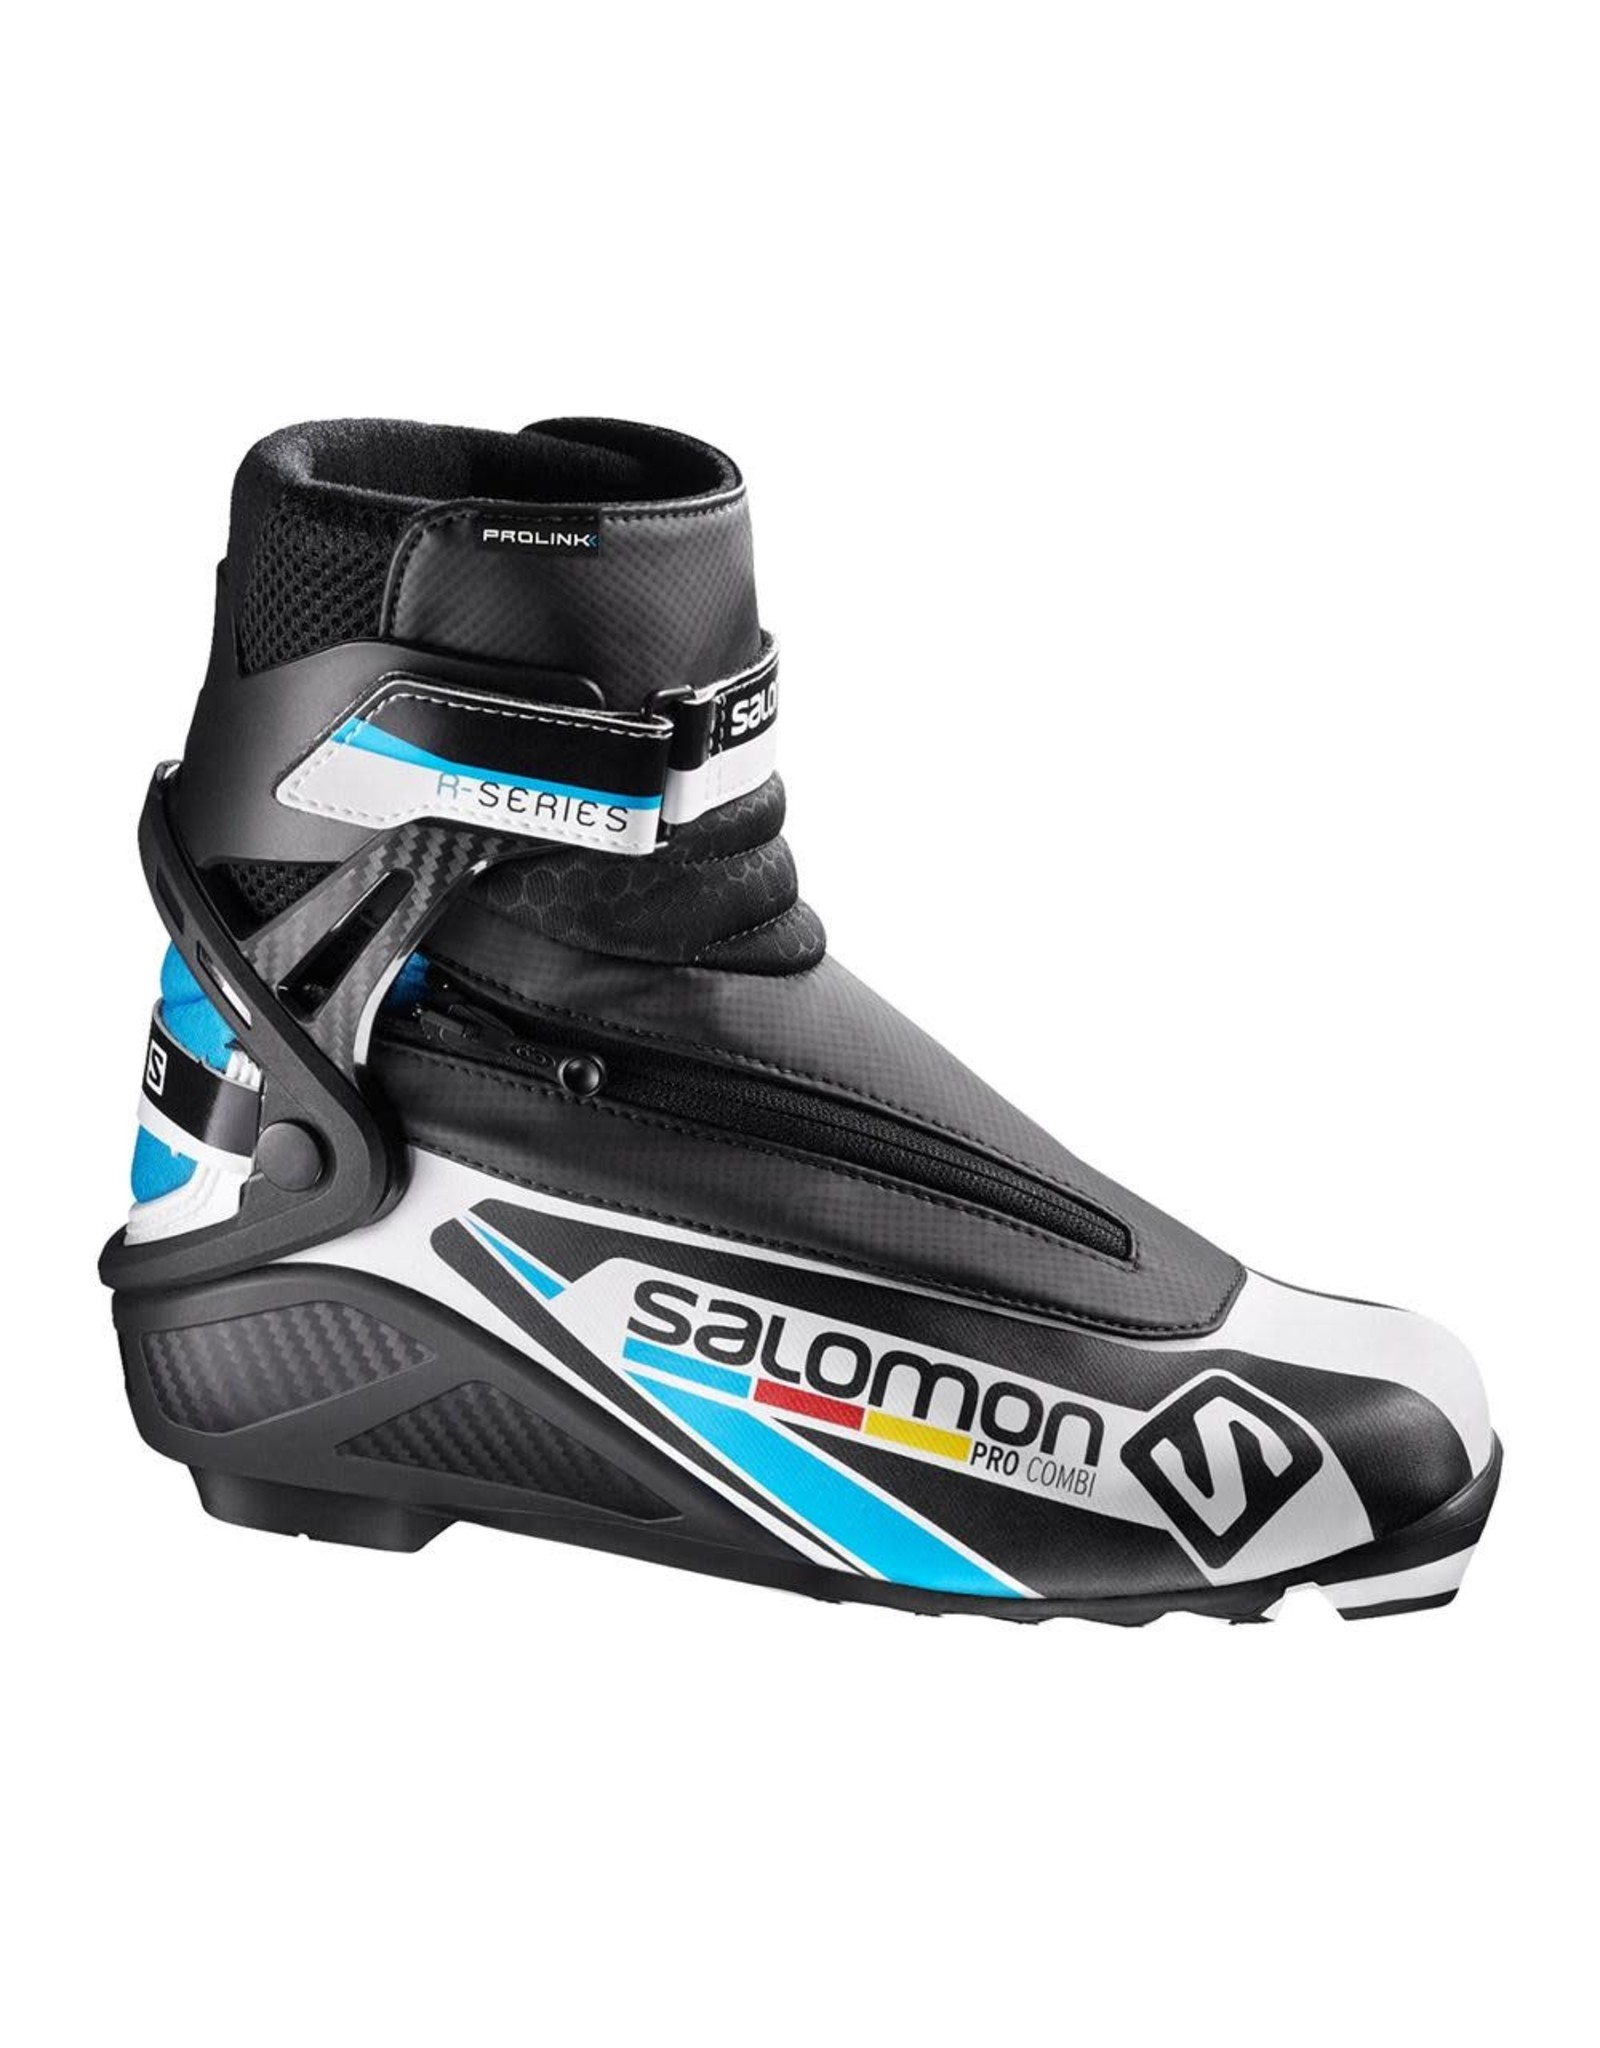 Salomon Salomon Pro Combi Prolink Boot